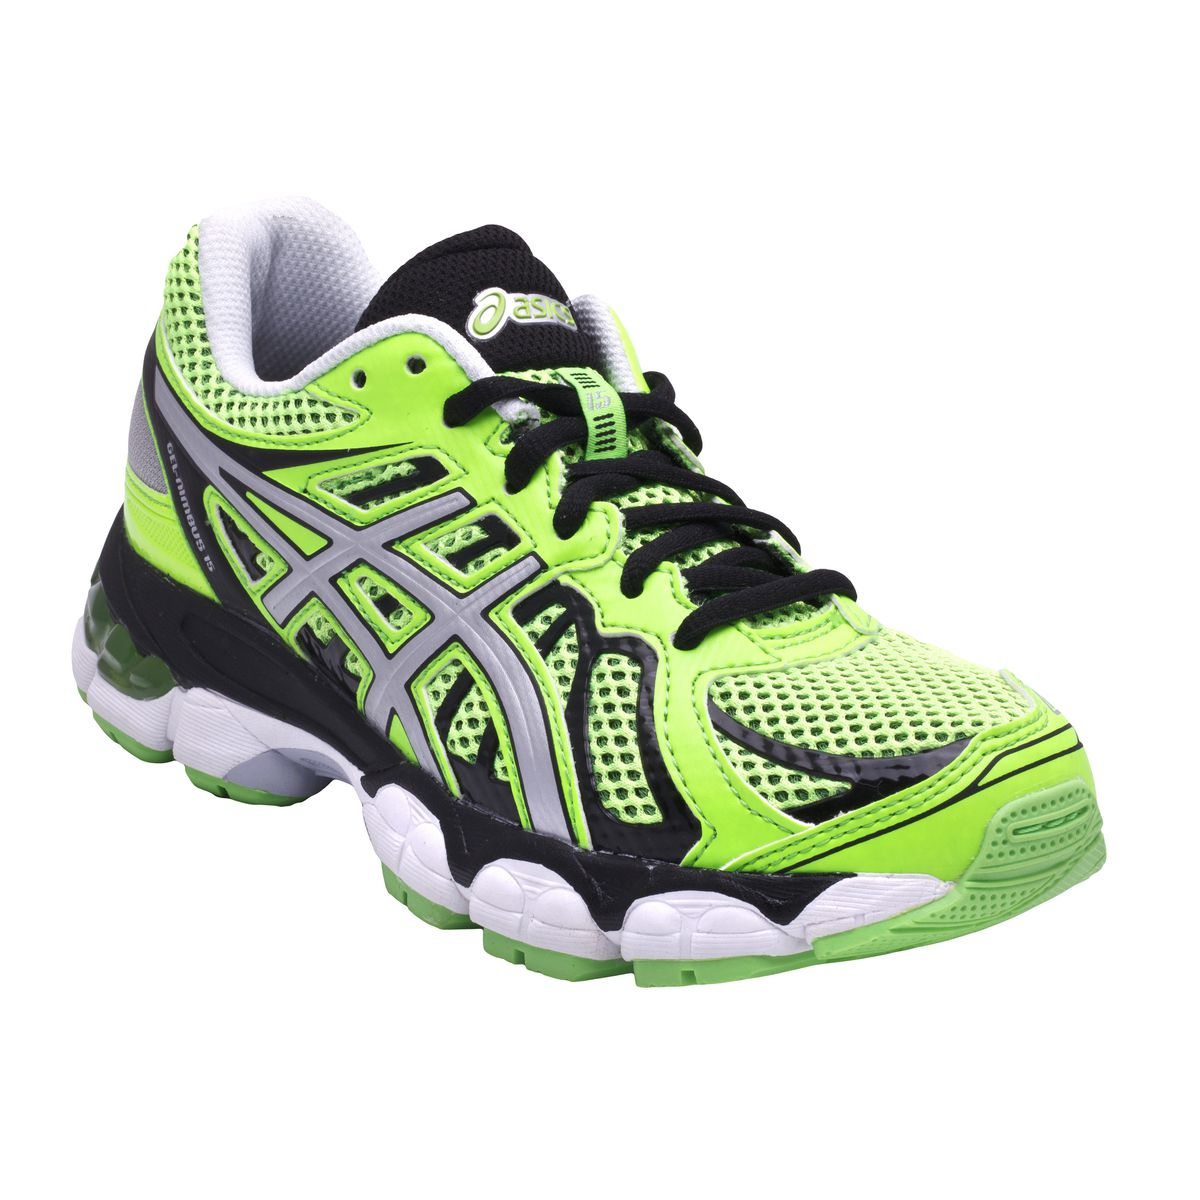 asics shoes cleaning girl animations coloring 657152